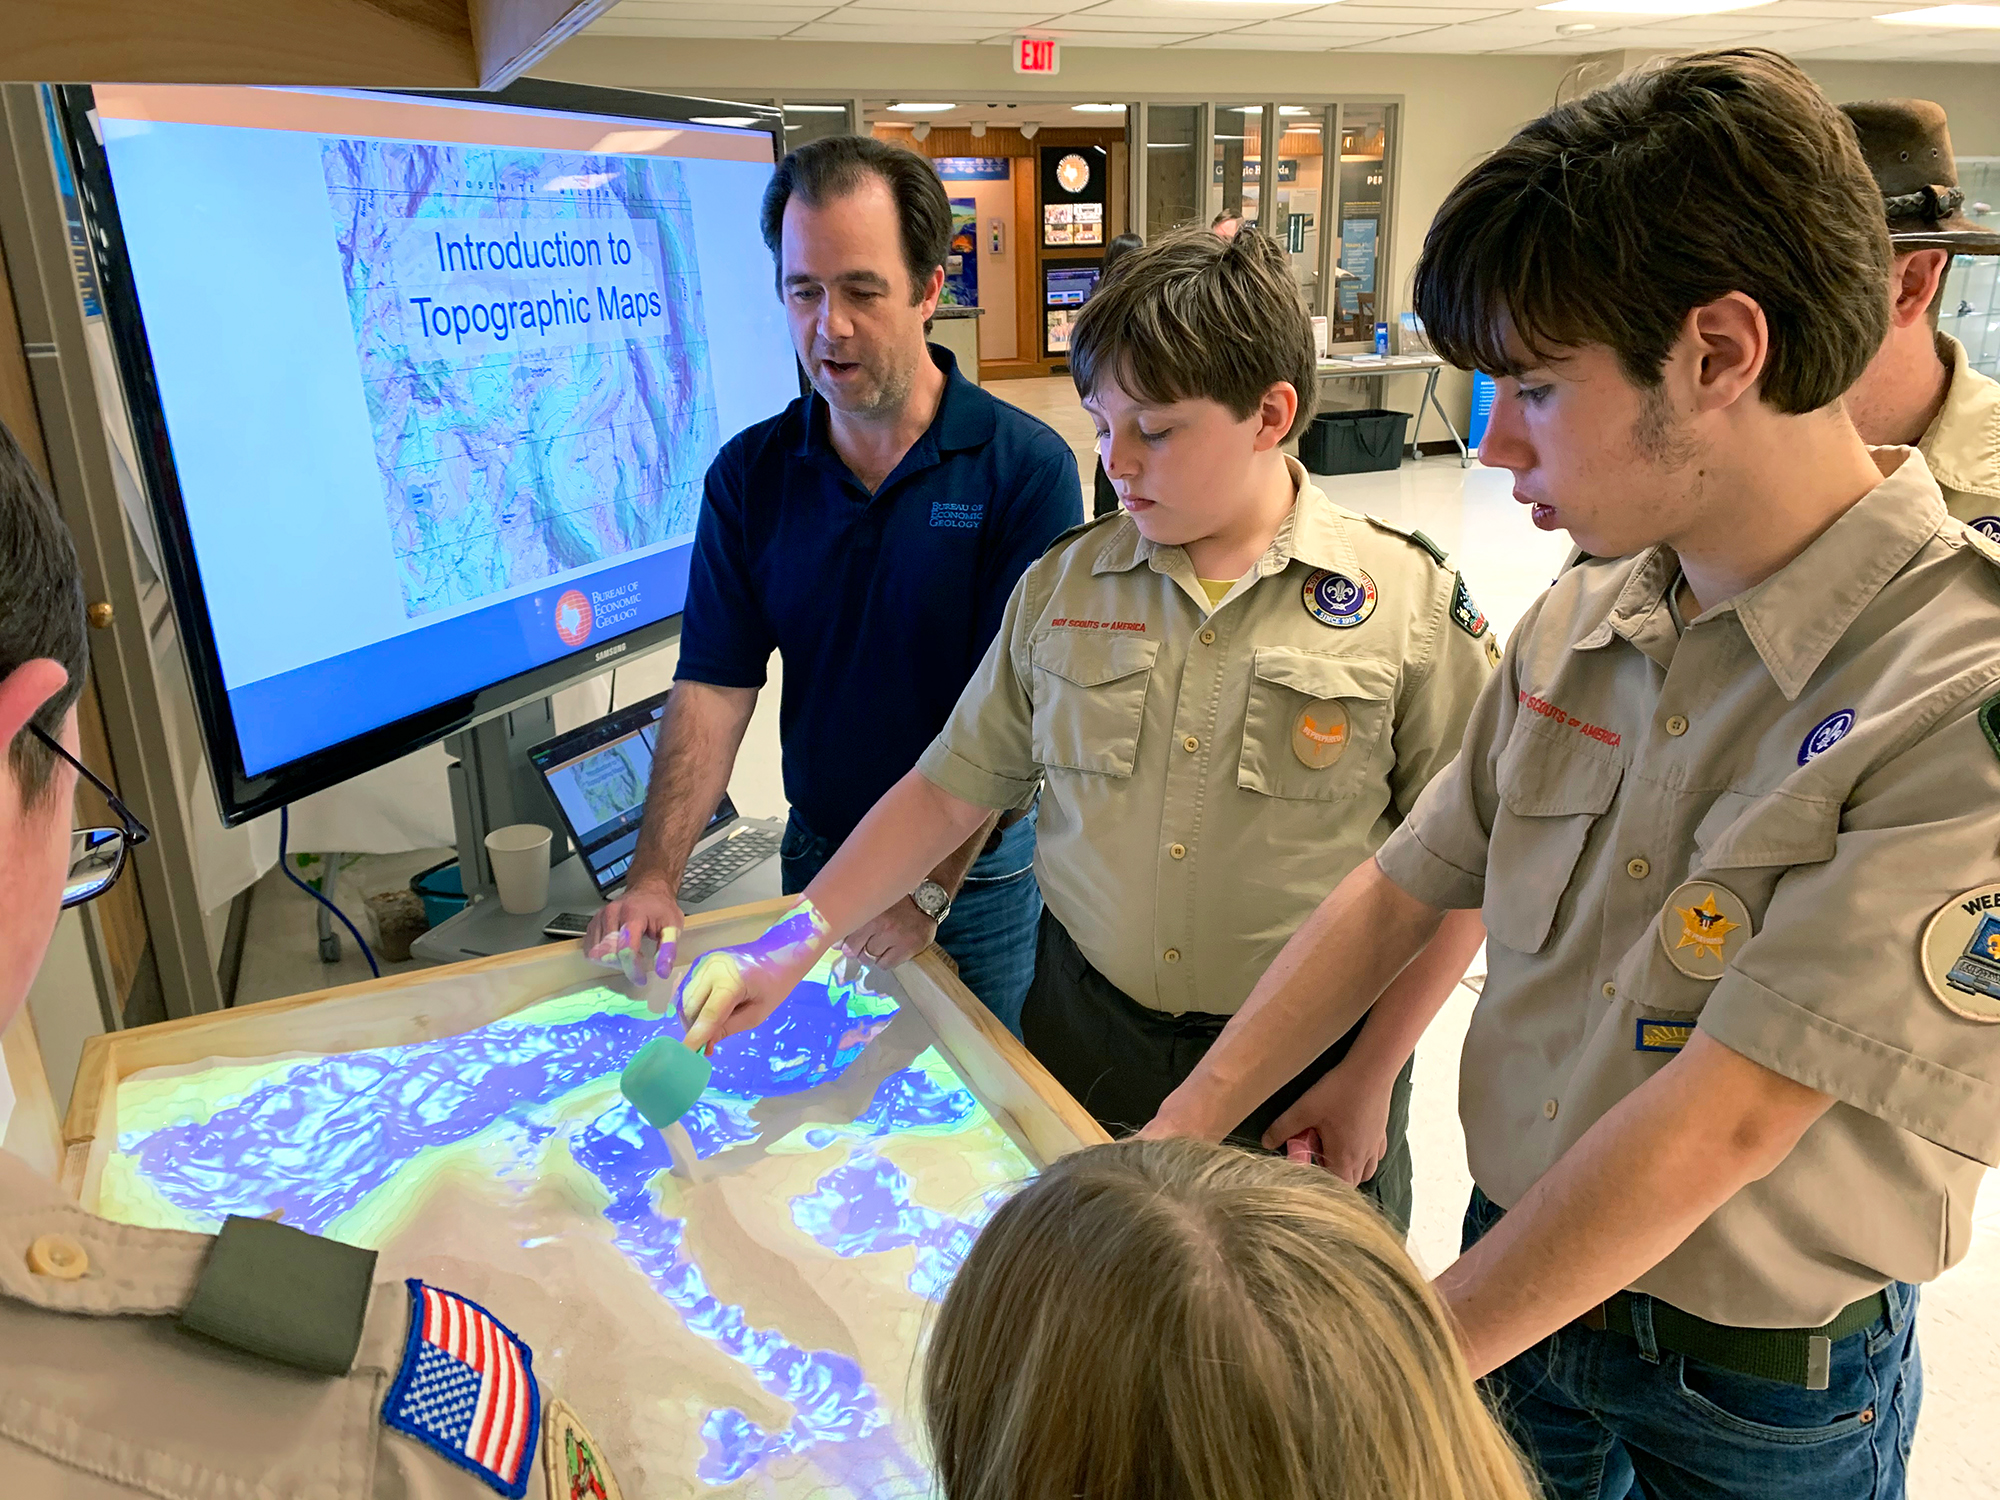 Dallas Dunlap applies a 3D perspective to topographic maps and geological processes using the Bureau's new Augmented Reality Sandbox.